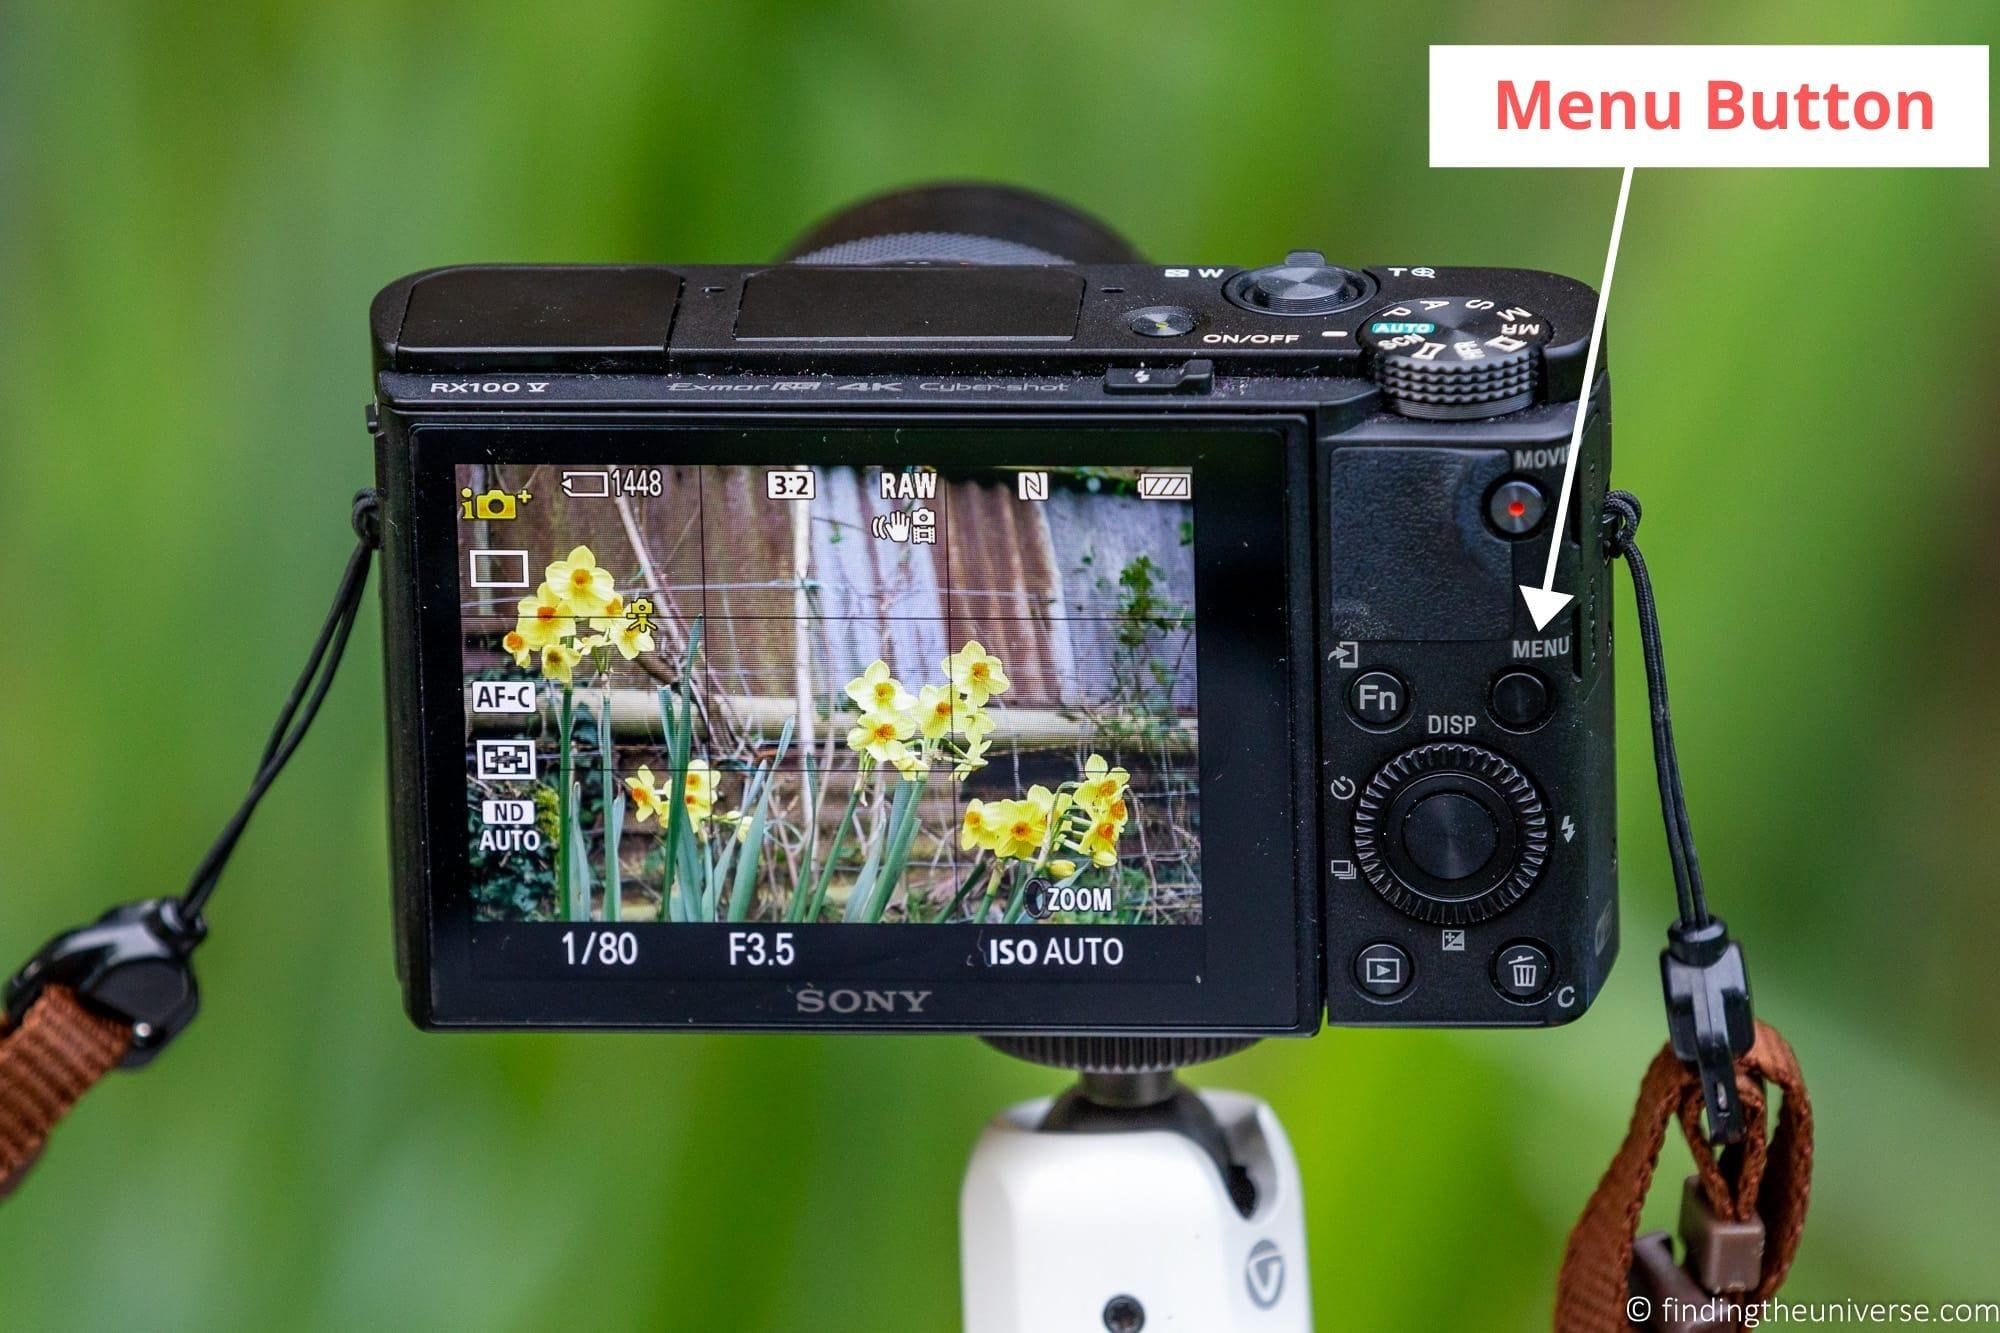 Bouton de menu de l'appareil photo compact